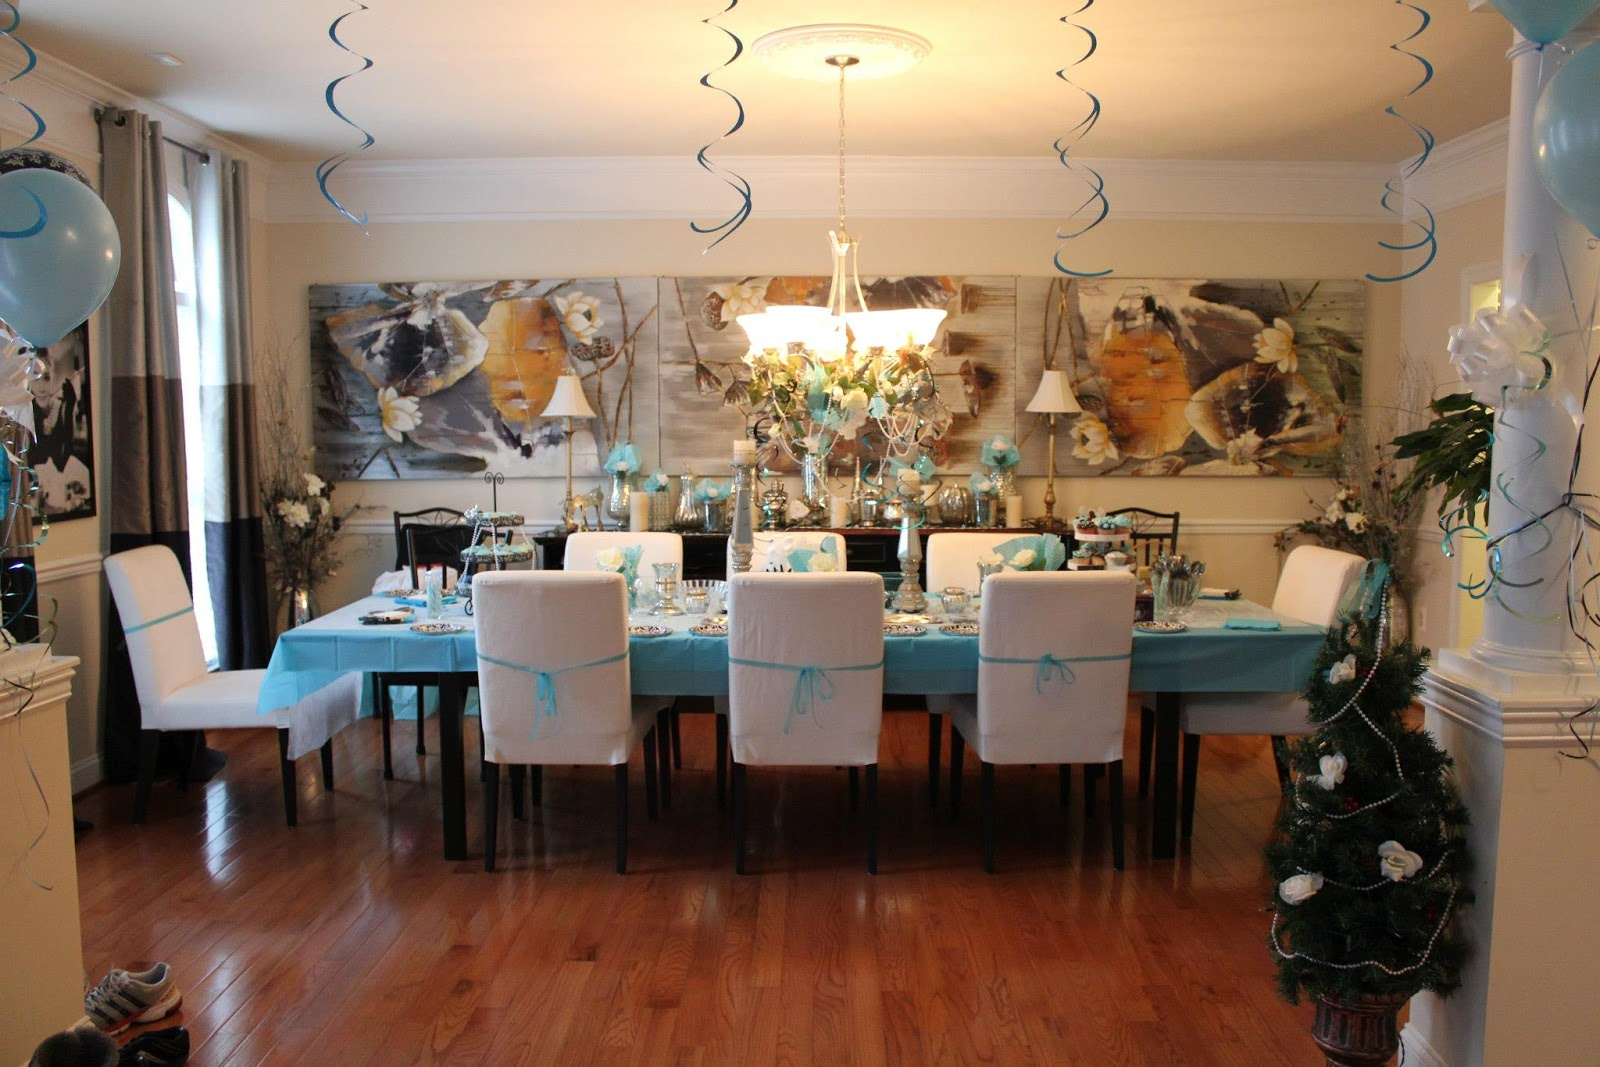 Breakfast At Tiffany S Theme Baby Shower Chanelly Belly